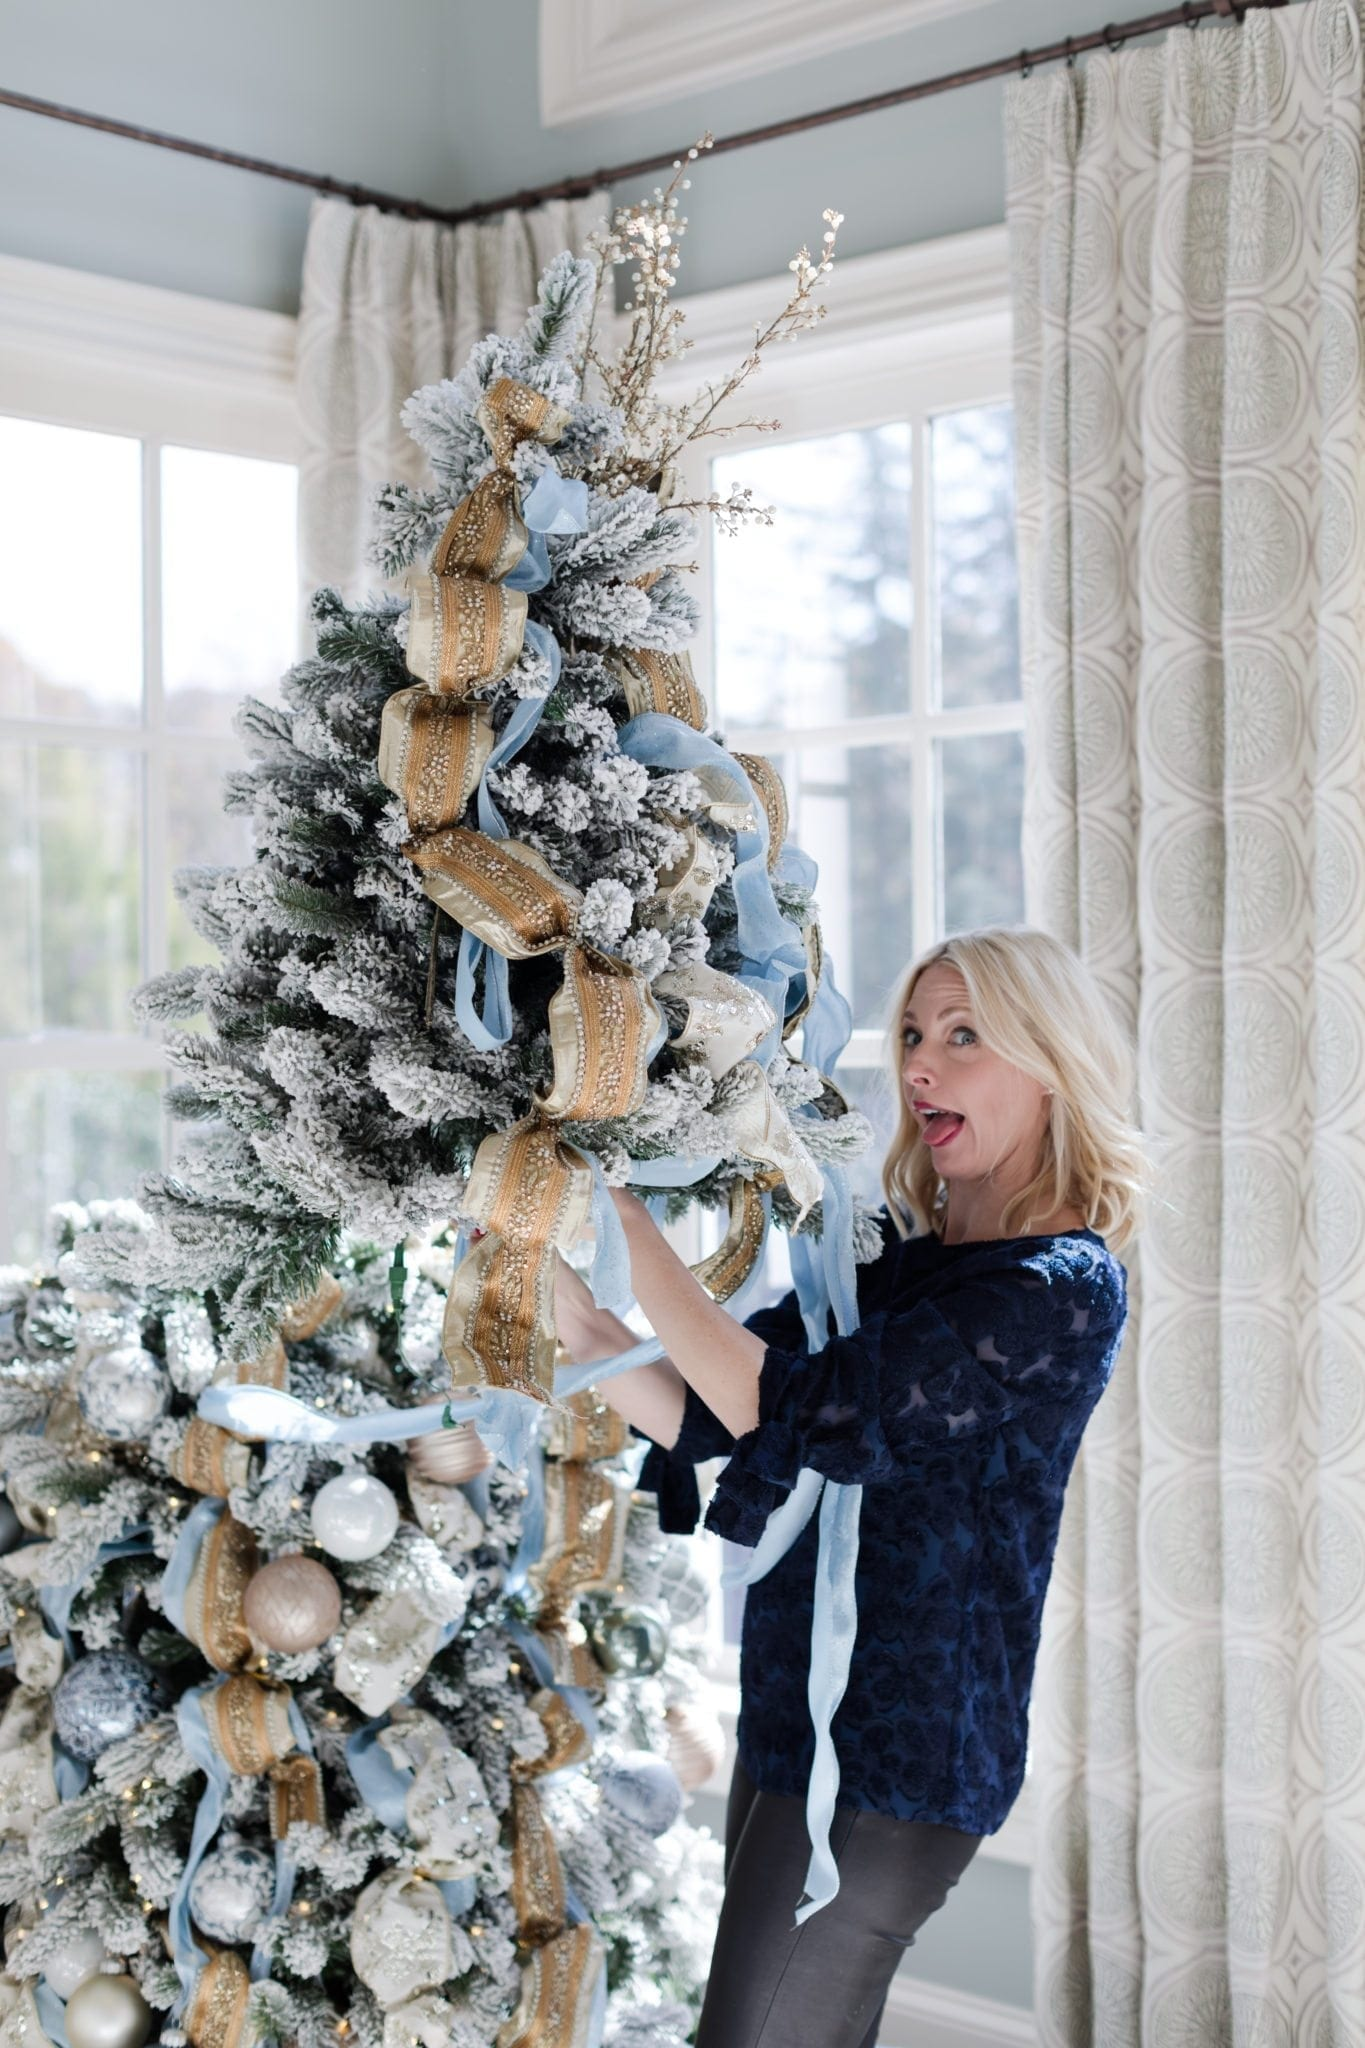 I'm teaching a tree decorating class in atlanta 11/27 – it's free to attend!